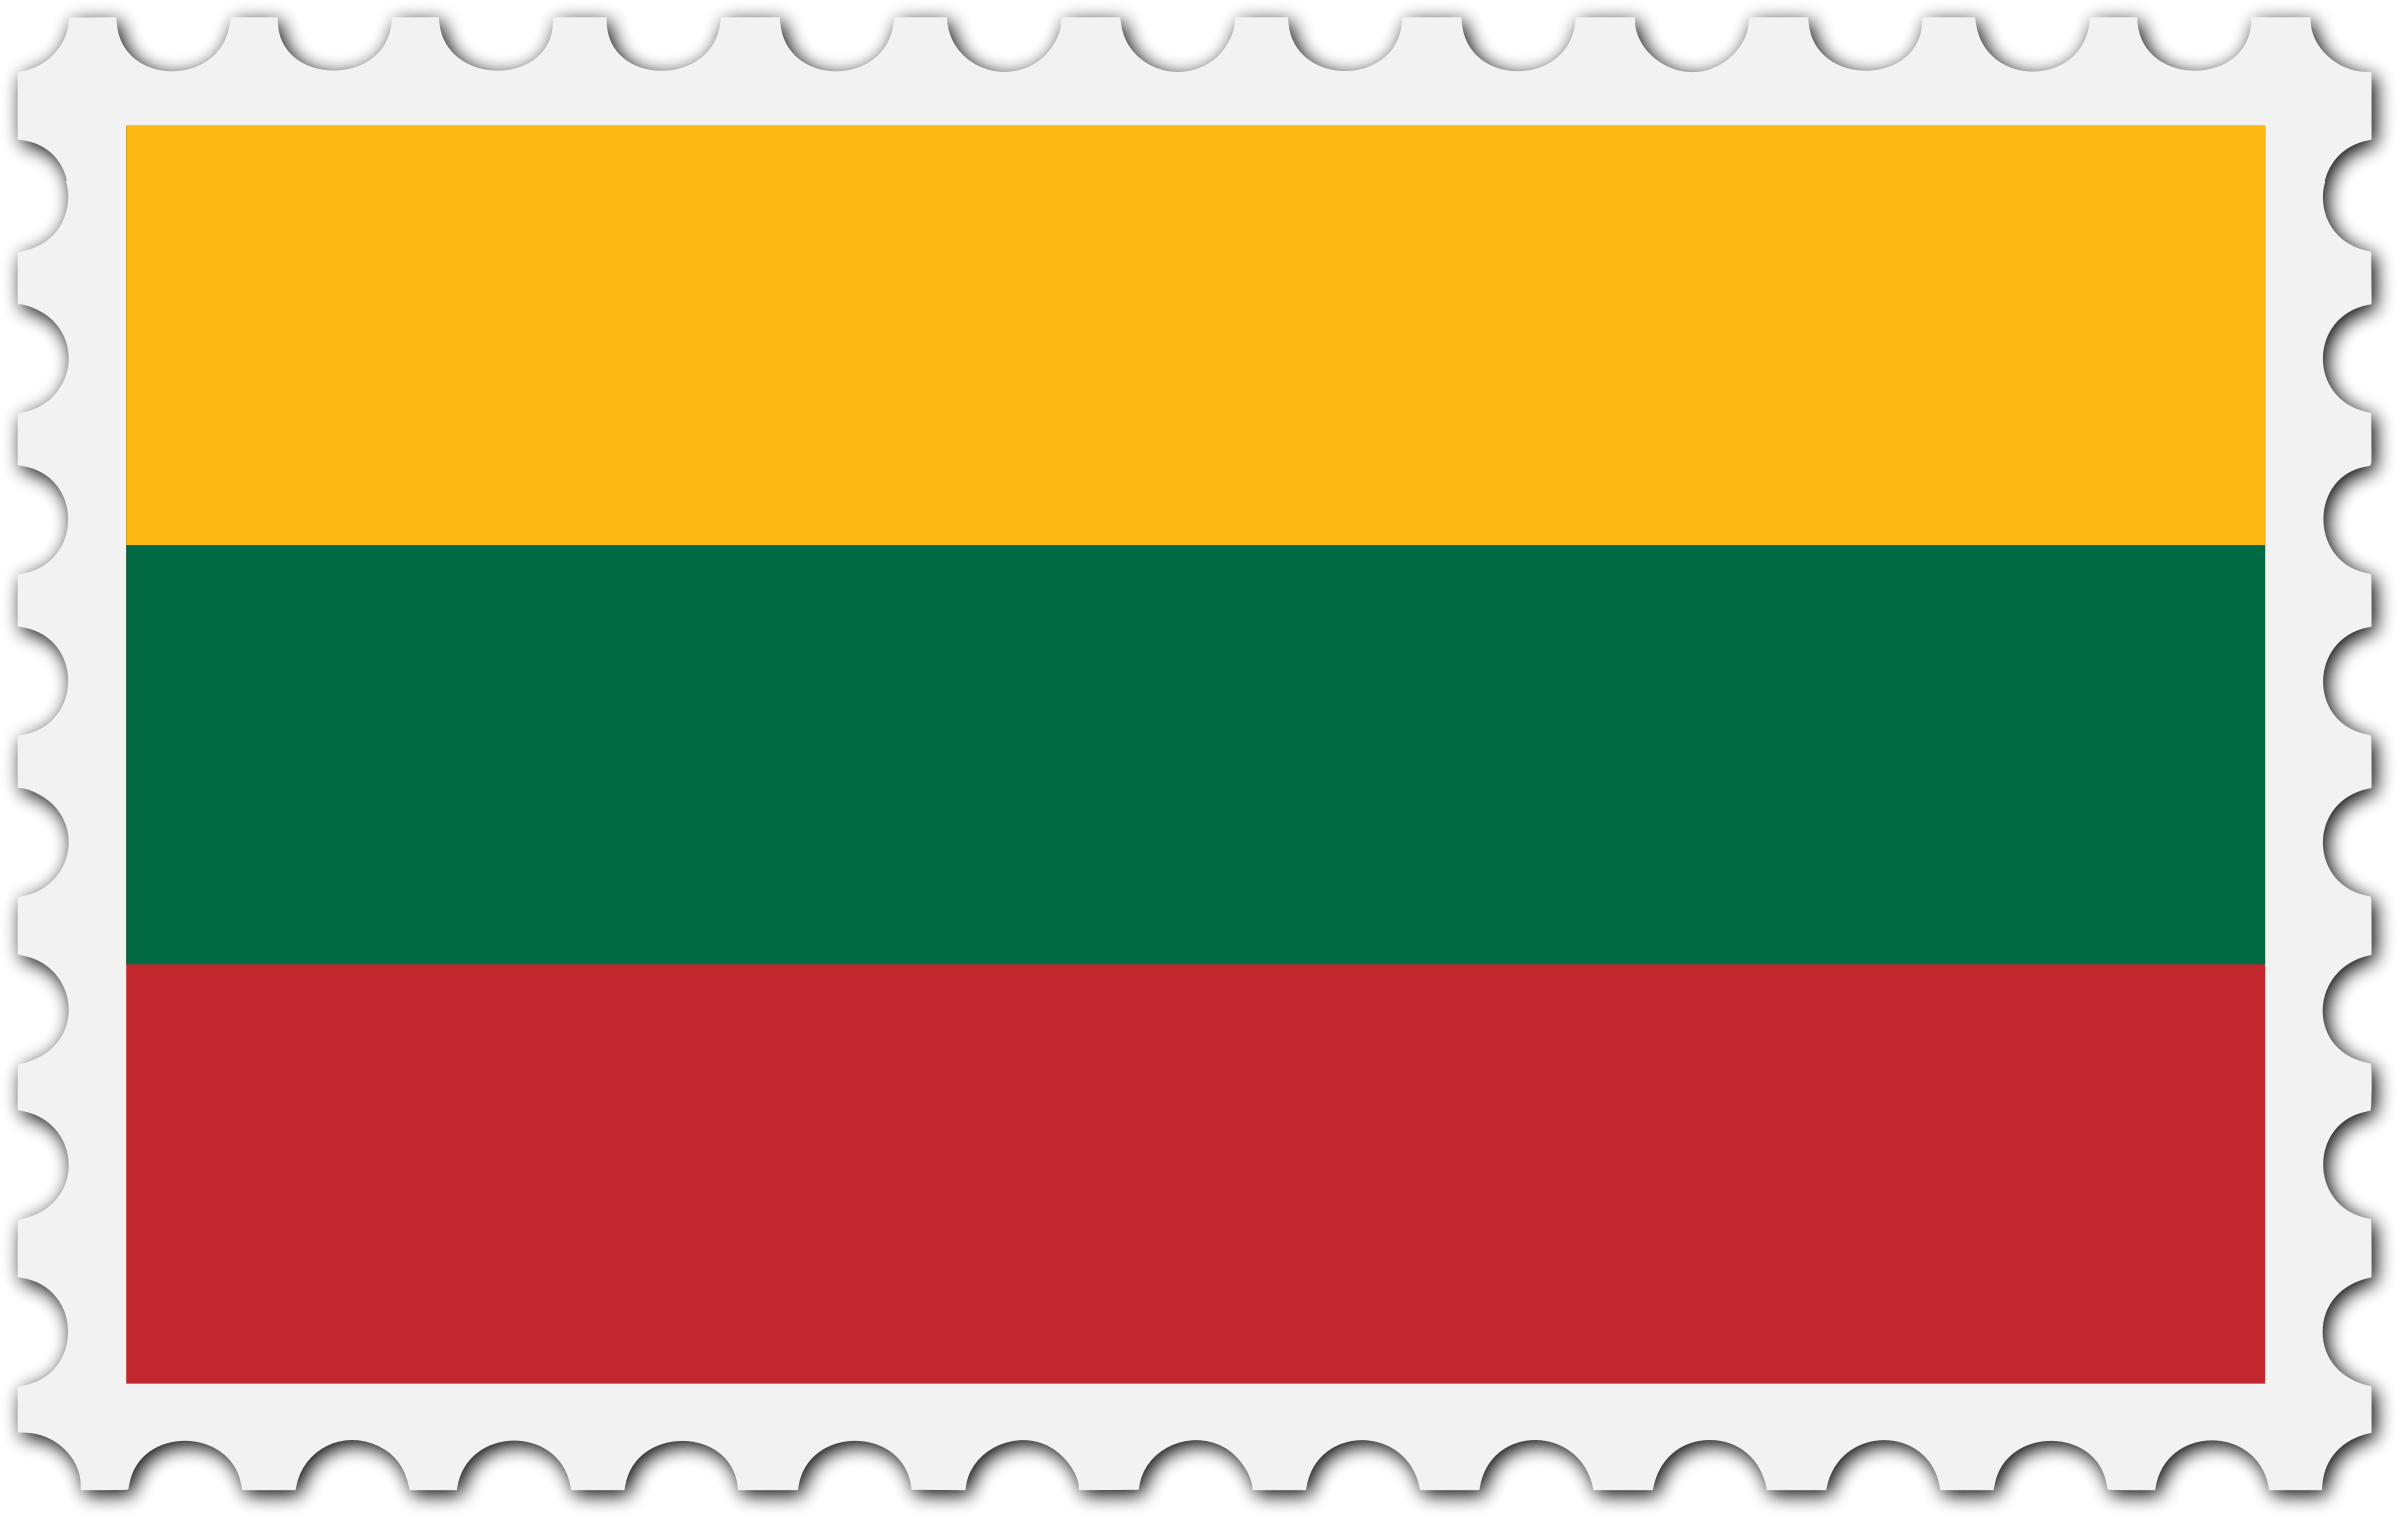 Lithuania flag stamp by Firkin